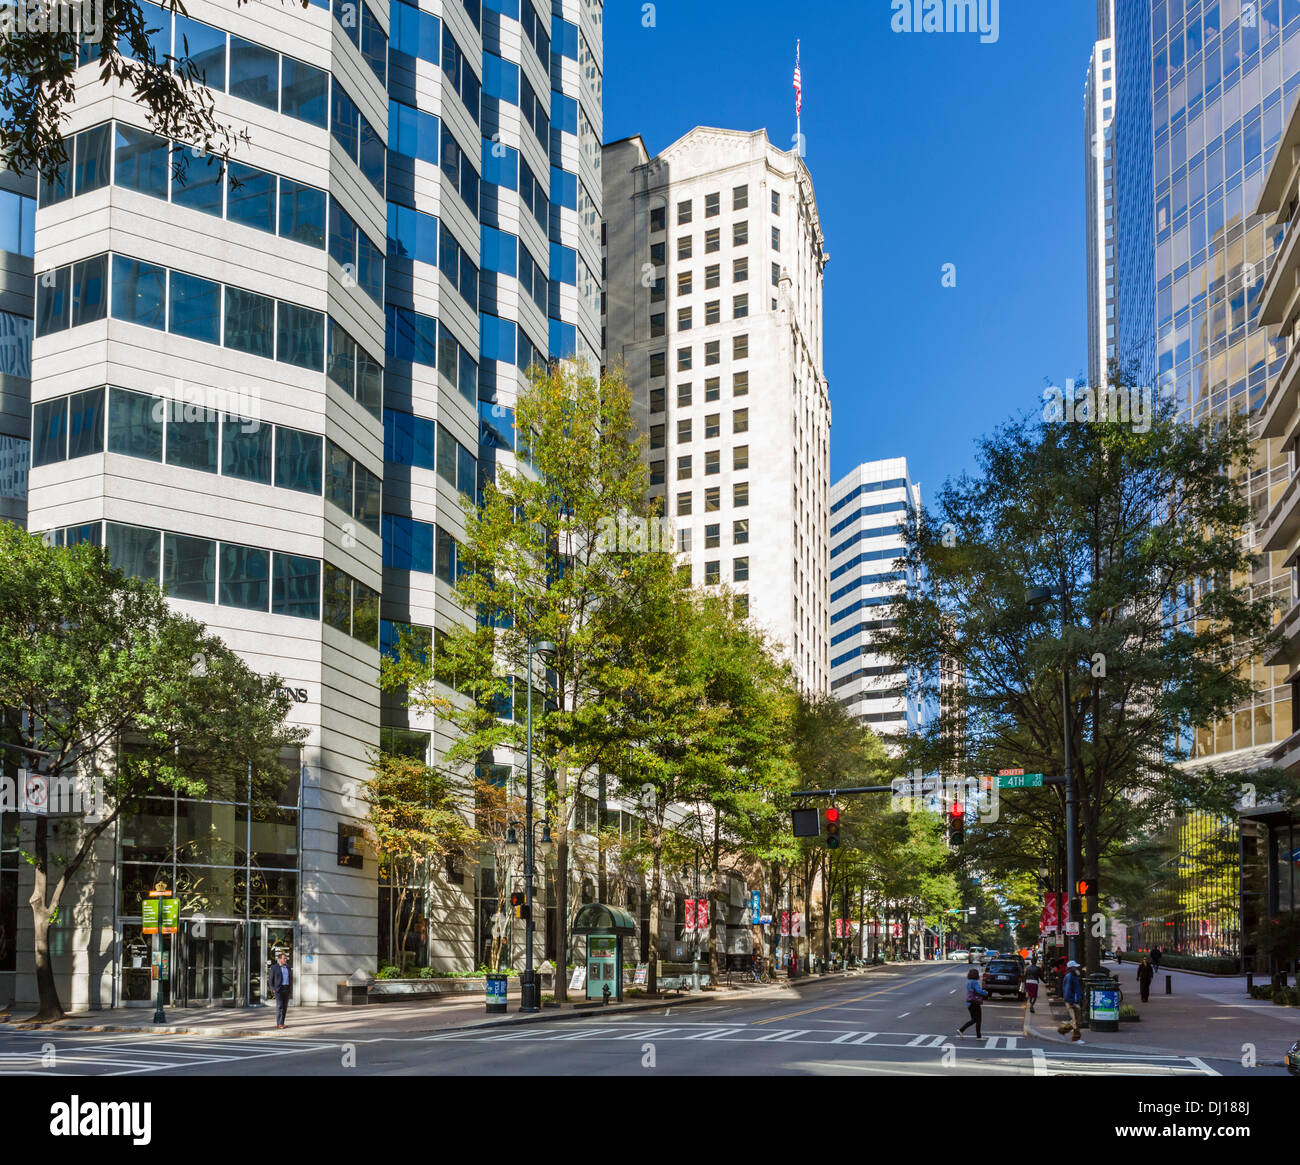 Office buildings on North Tryon Street in downtown Charlotte, North Carolina, USA - Stock Image